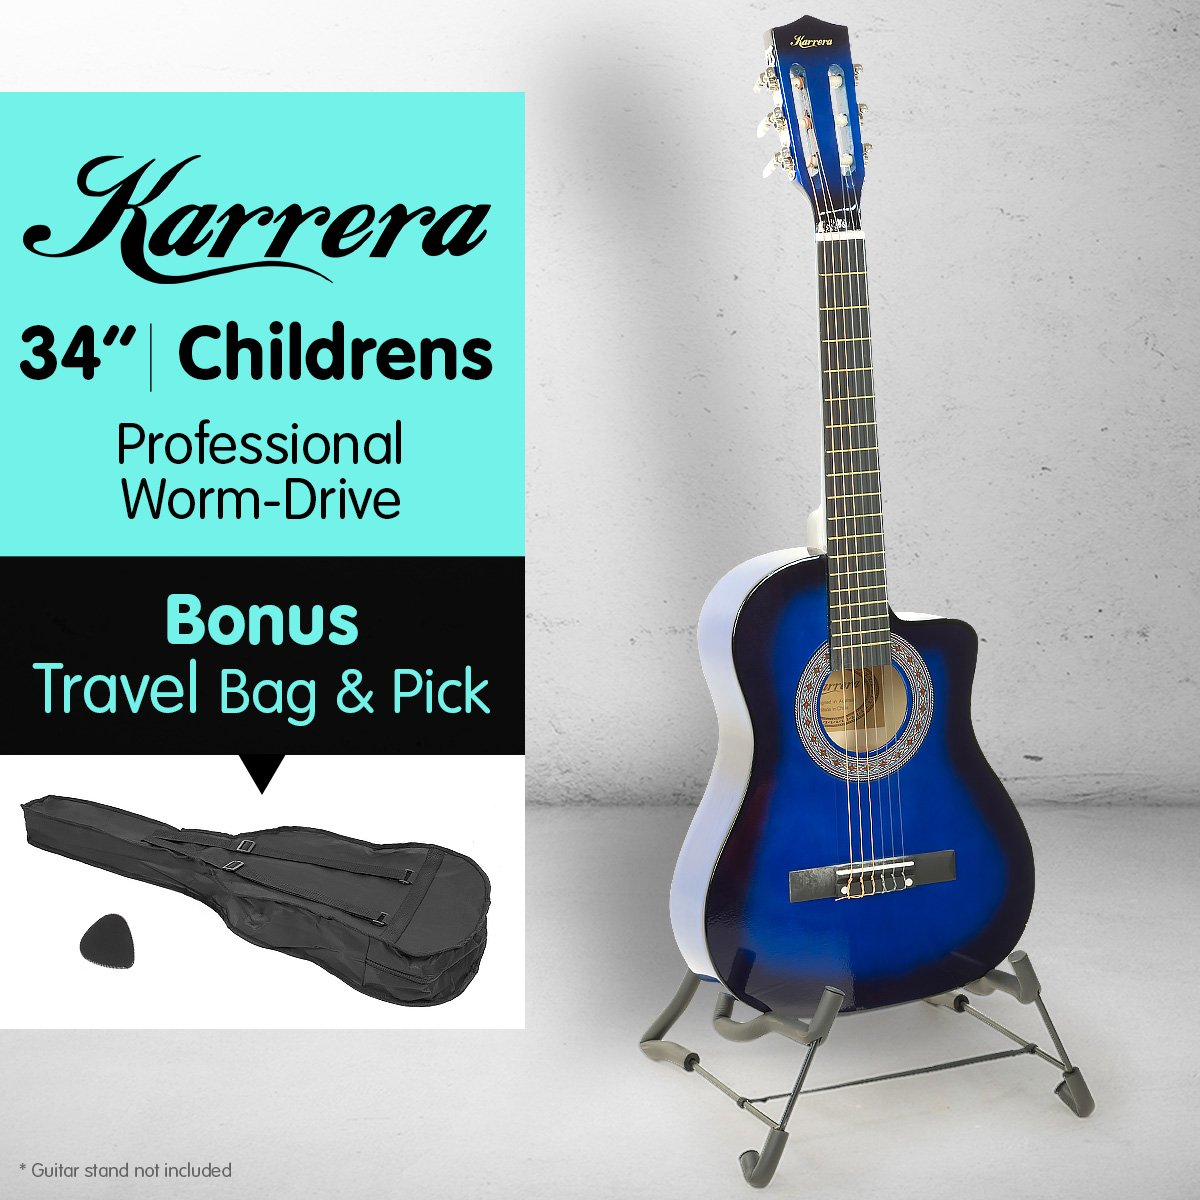 New-Karrera-Childrens-Acoustic-Cutaway-Wooden-Guitar-Ideal-Kids-Gift-1-2-Size